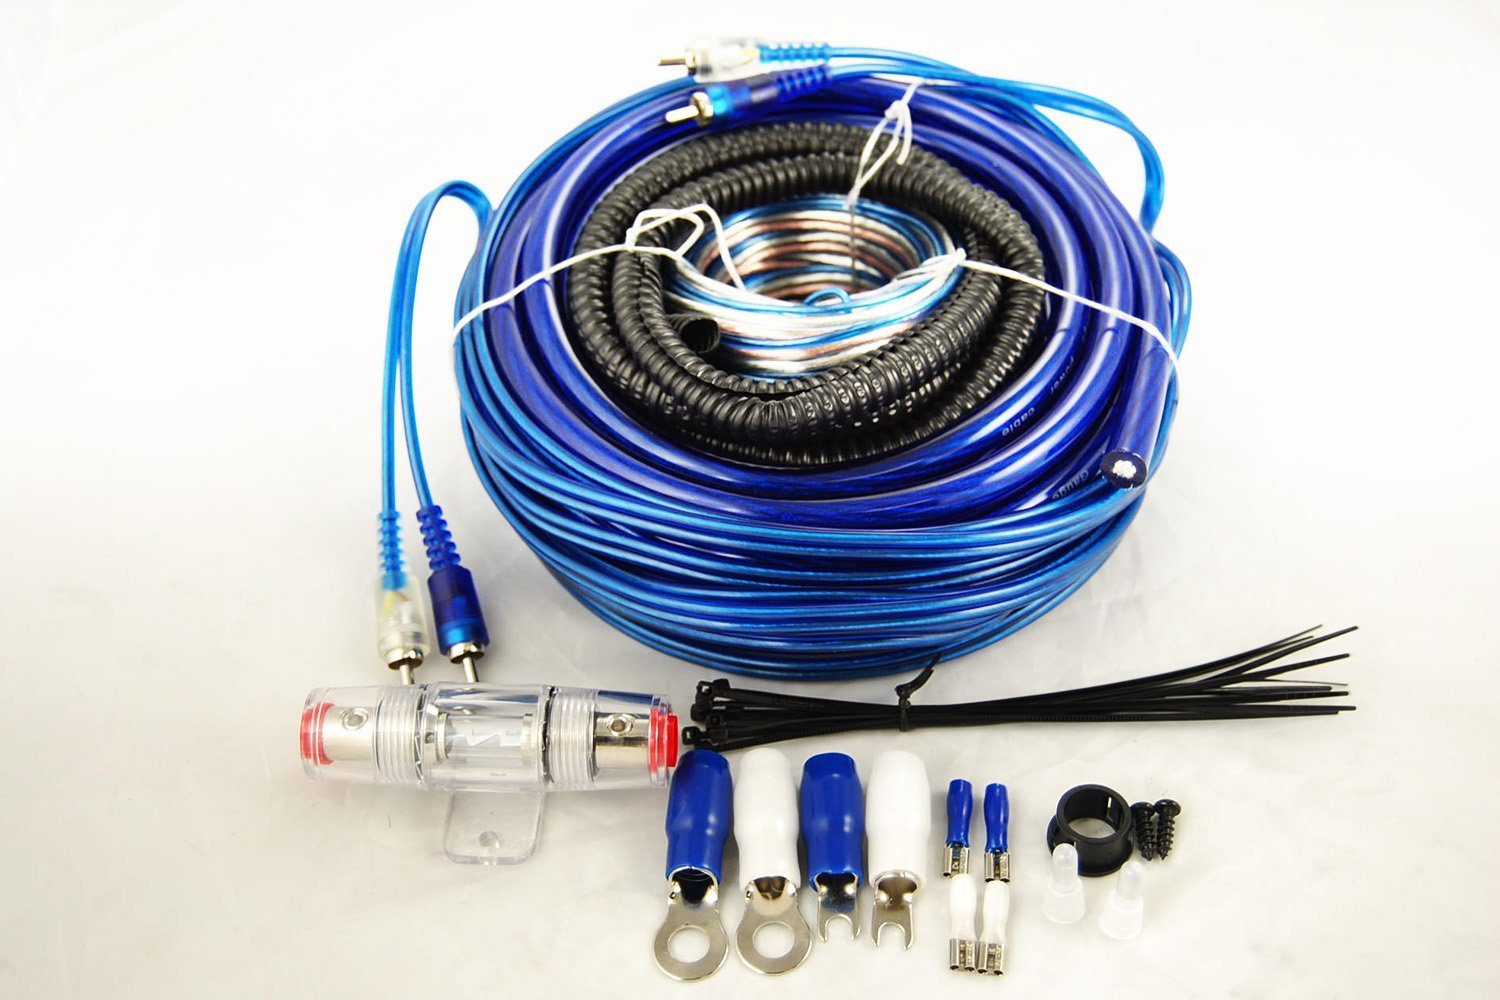 Buy Novosonics Amp 4 Gauge Kit Amplifier Installation Wiring 1500 Watt In Cheap Price On